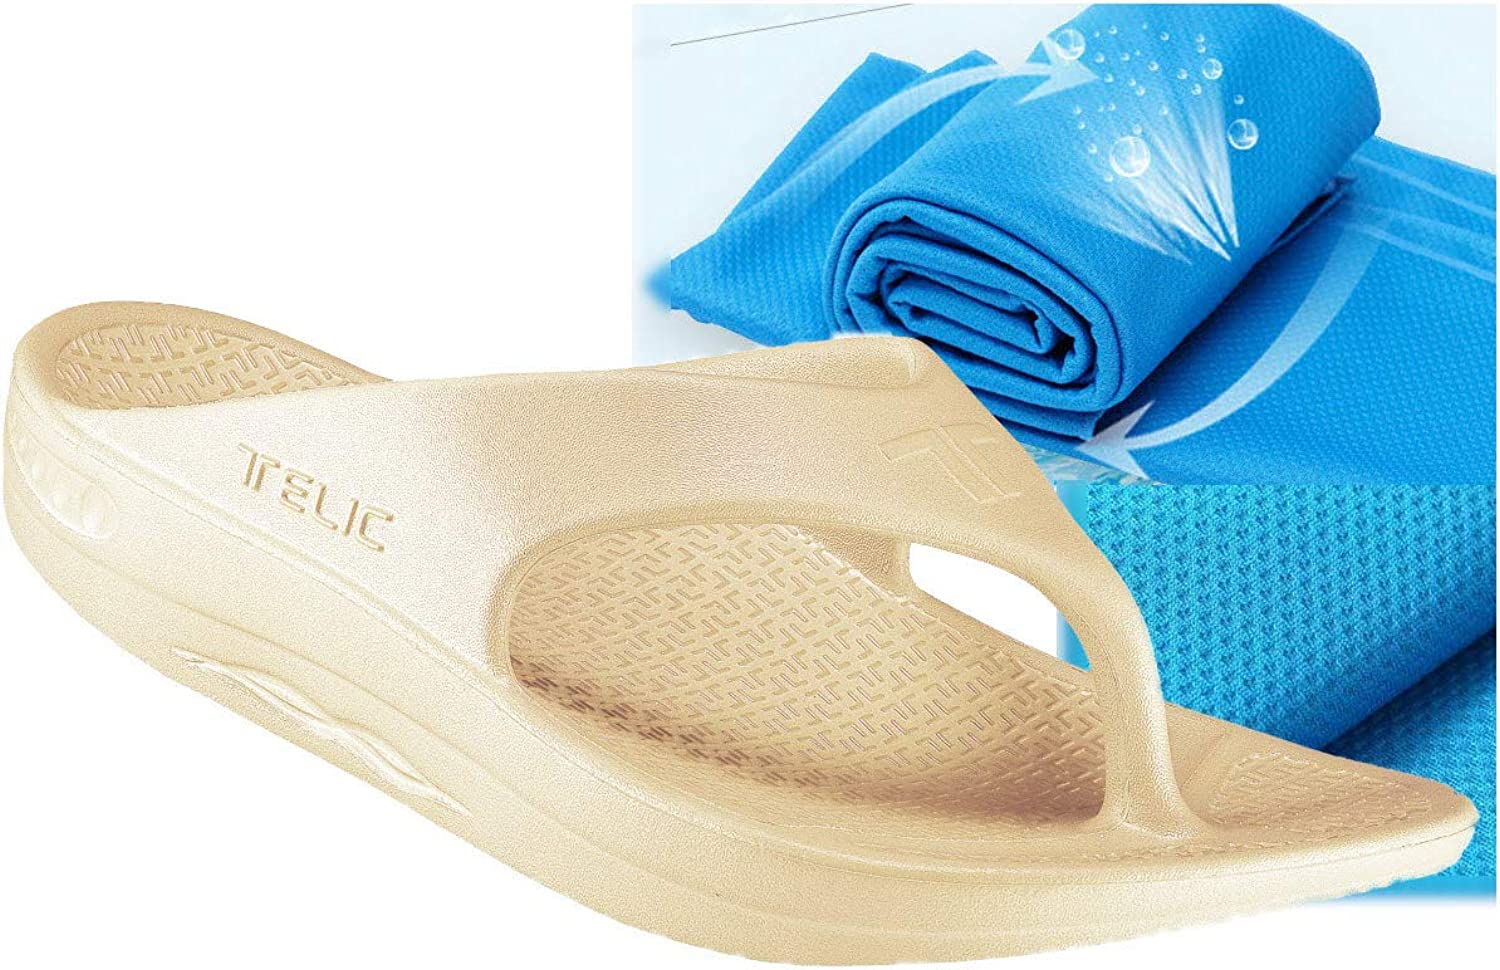 Telic Unisex ArchSupport FlipFlops and Bob Sports Towel-Voted Best Comfort shoes